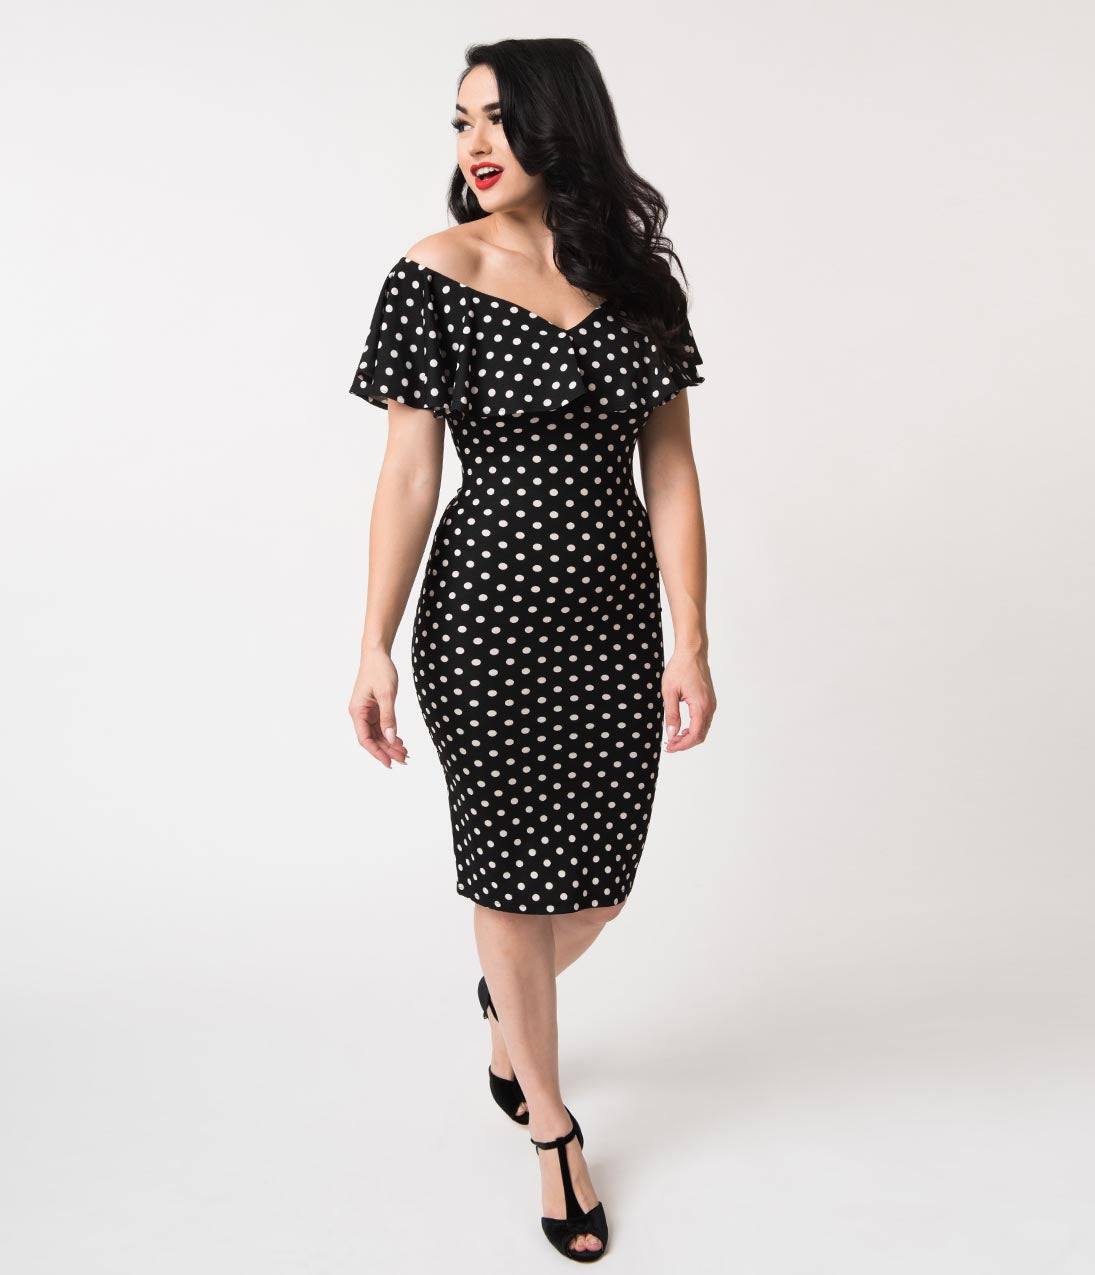 a4c5efeeb34 Vintage Polka Dot Dresses – 50s Spotty and Ditsy Prints Unique Vintage  Black White Polka Dot